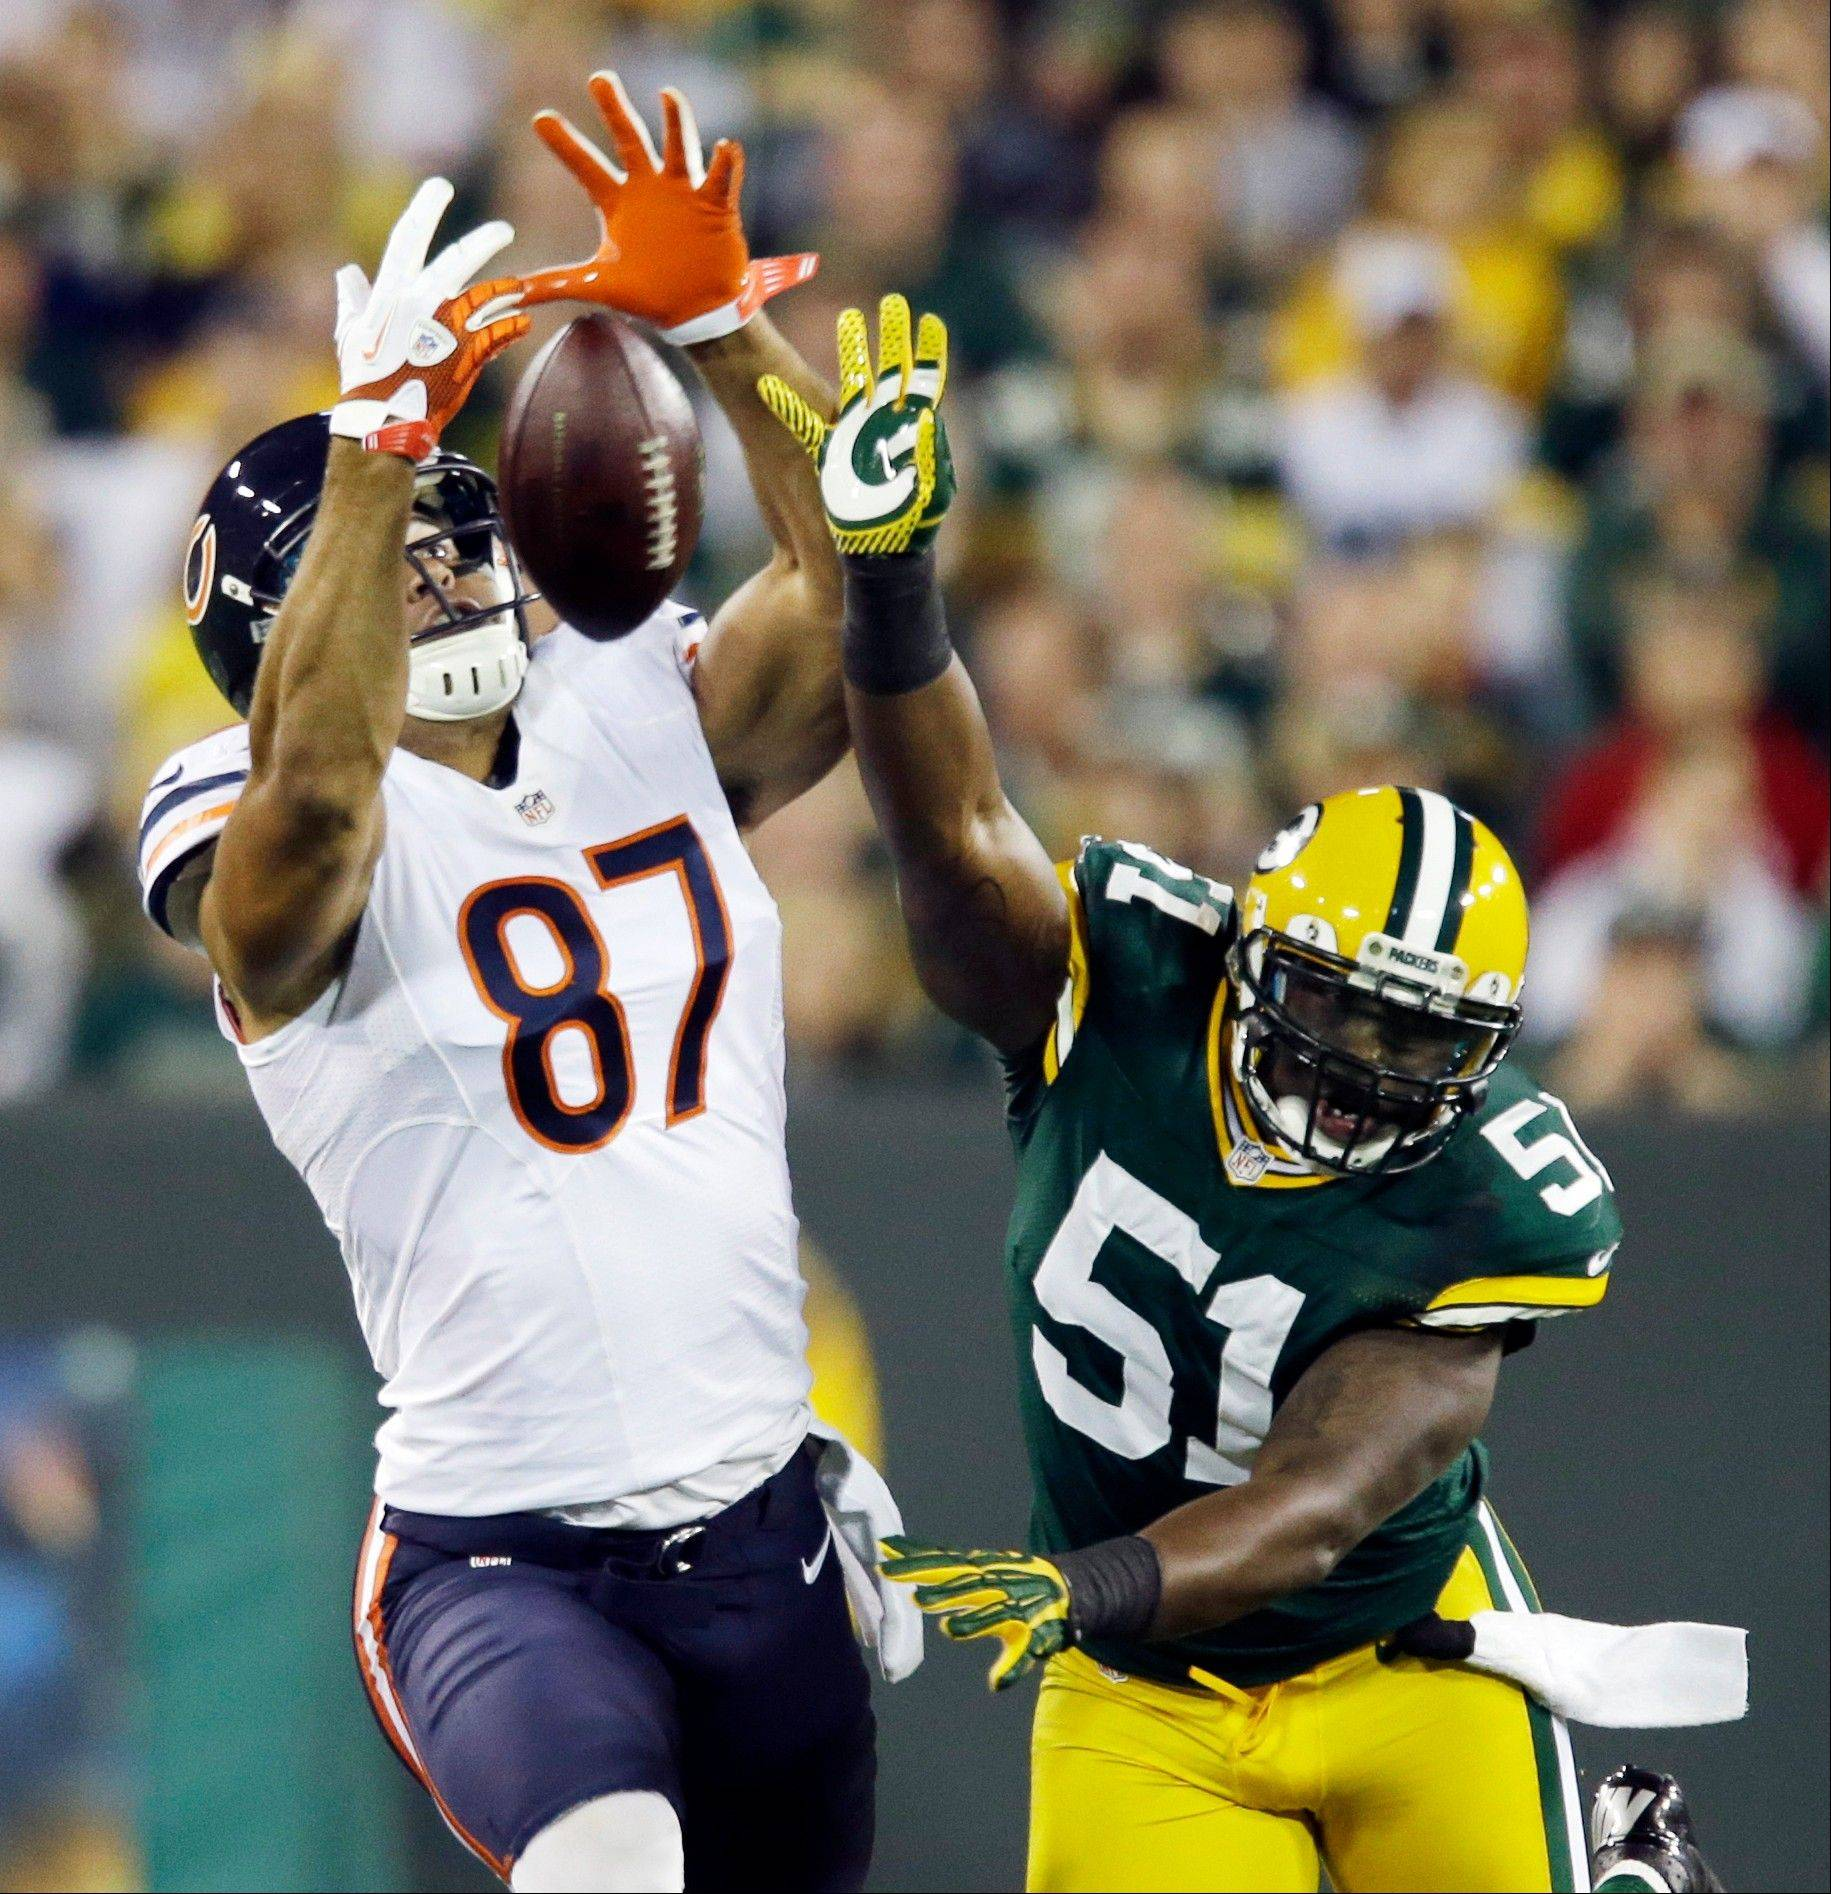 The Green Bay Packers� D.J. Smith breaks up a pass intended for Bears tight end Kellen Davis Thursday during the first half.